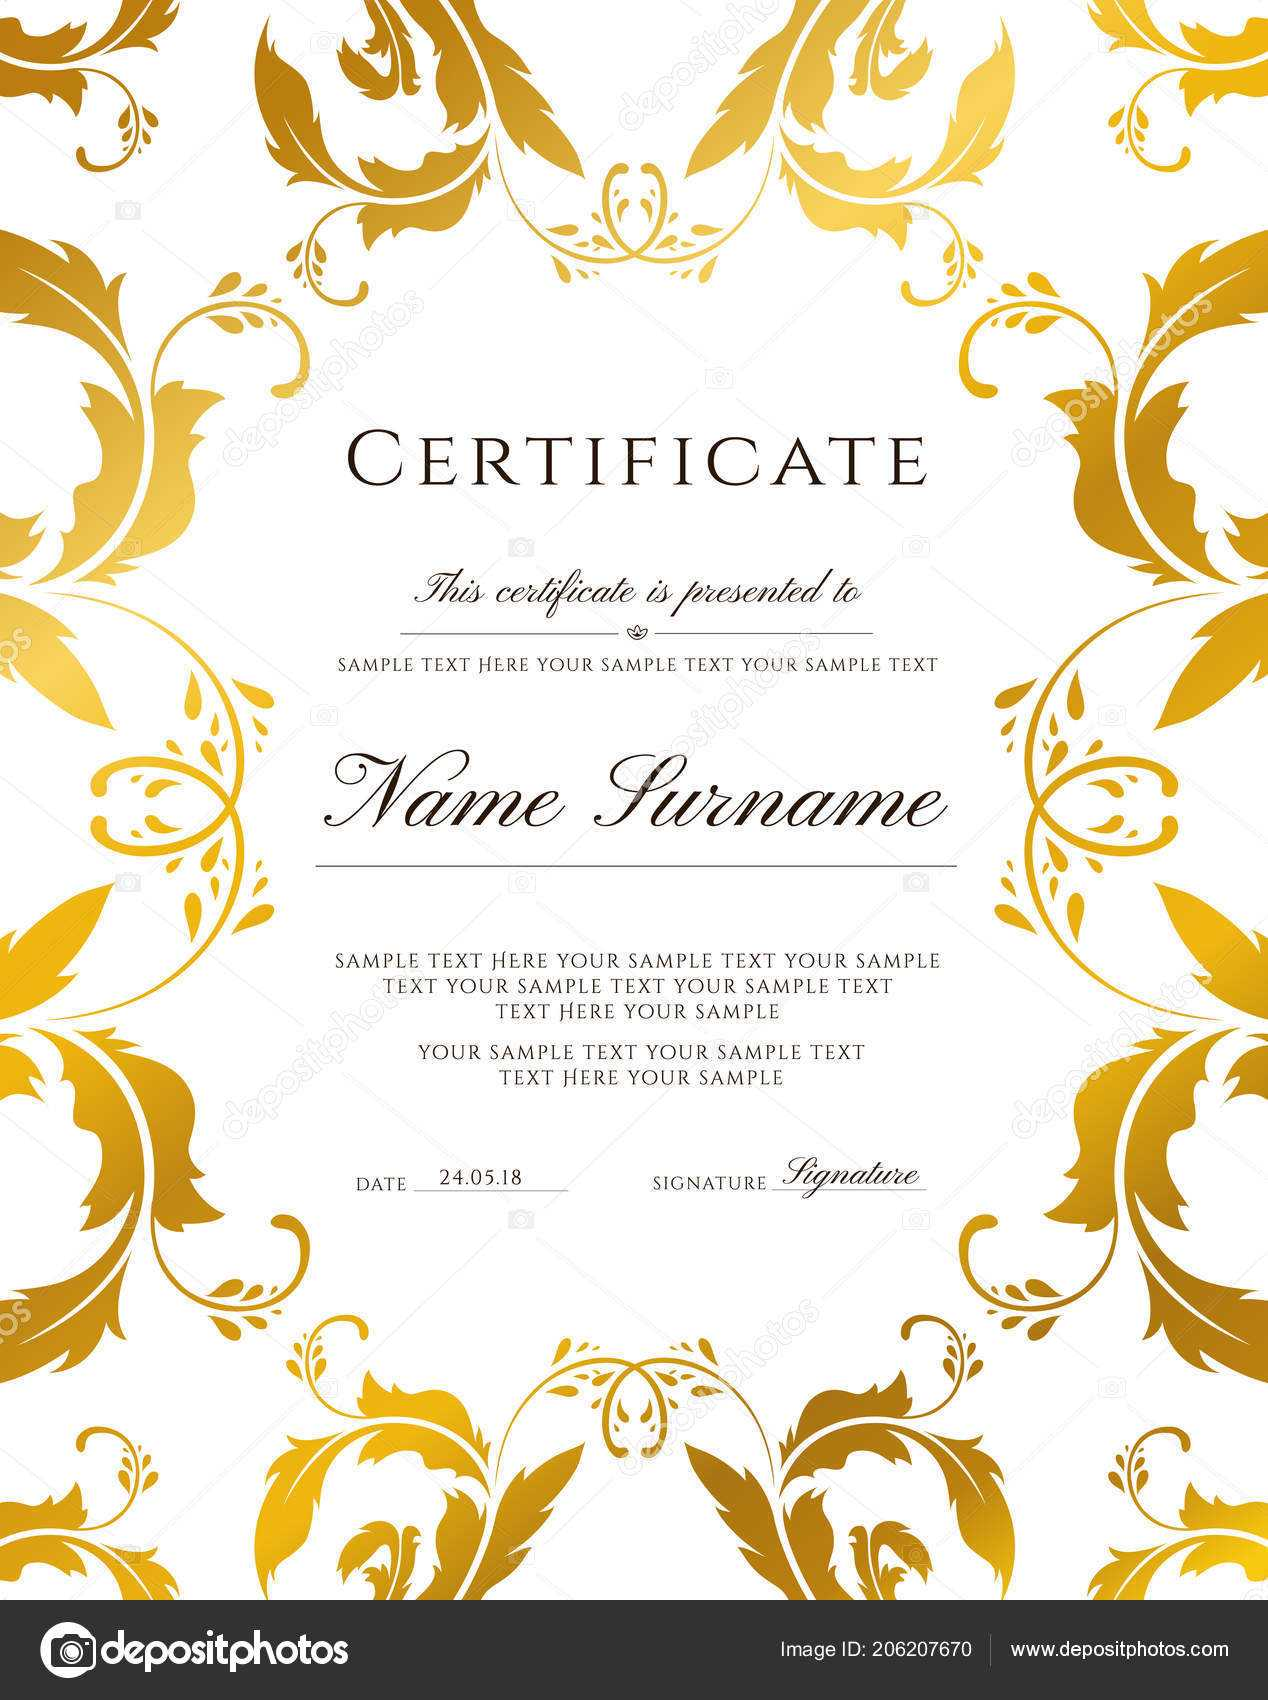 Gold Border Template   Certificate Template Gold Border In Award Certificate Border Template